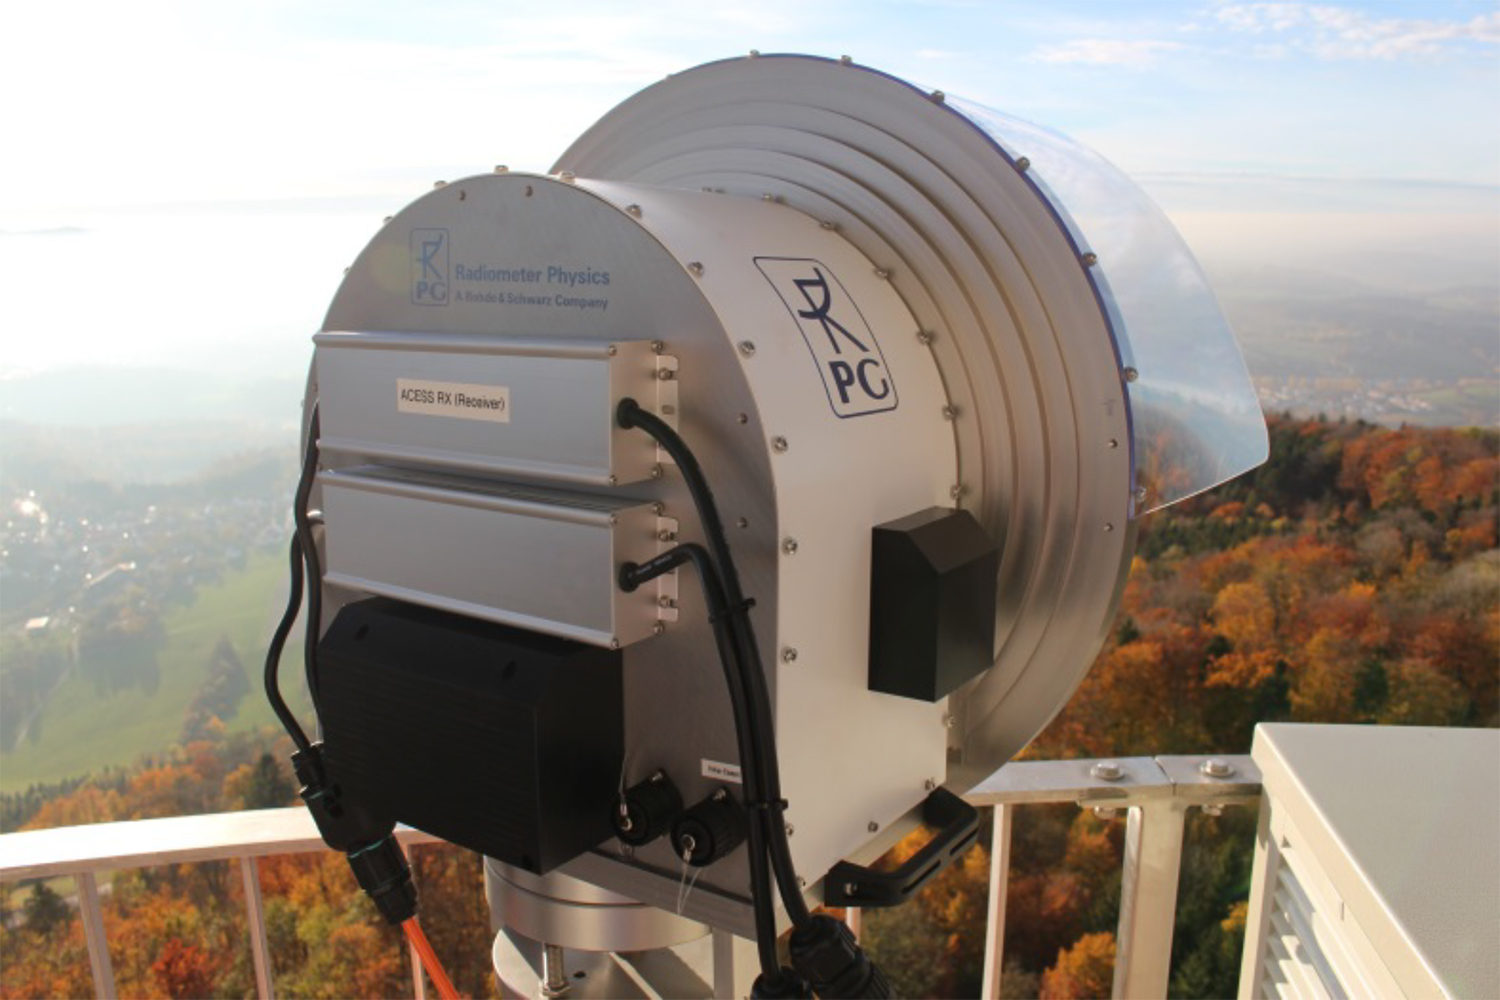 Prospects for 5G and beyond: The first THz radio link with up to 100 Gbps transmission speed